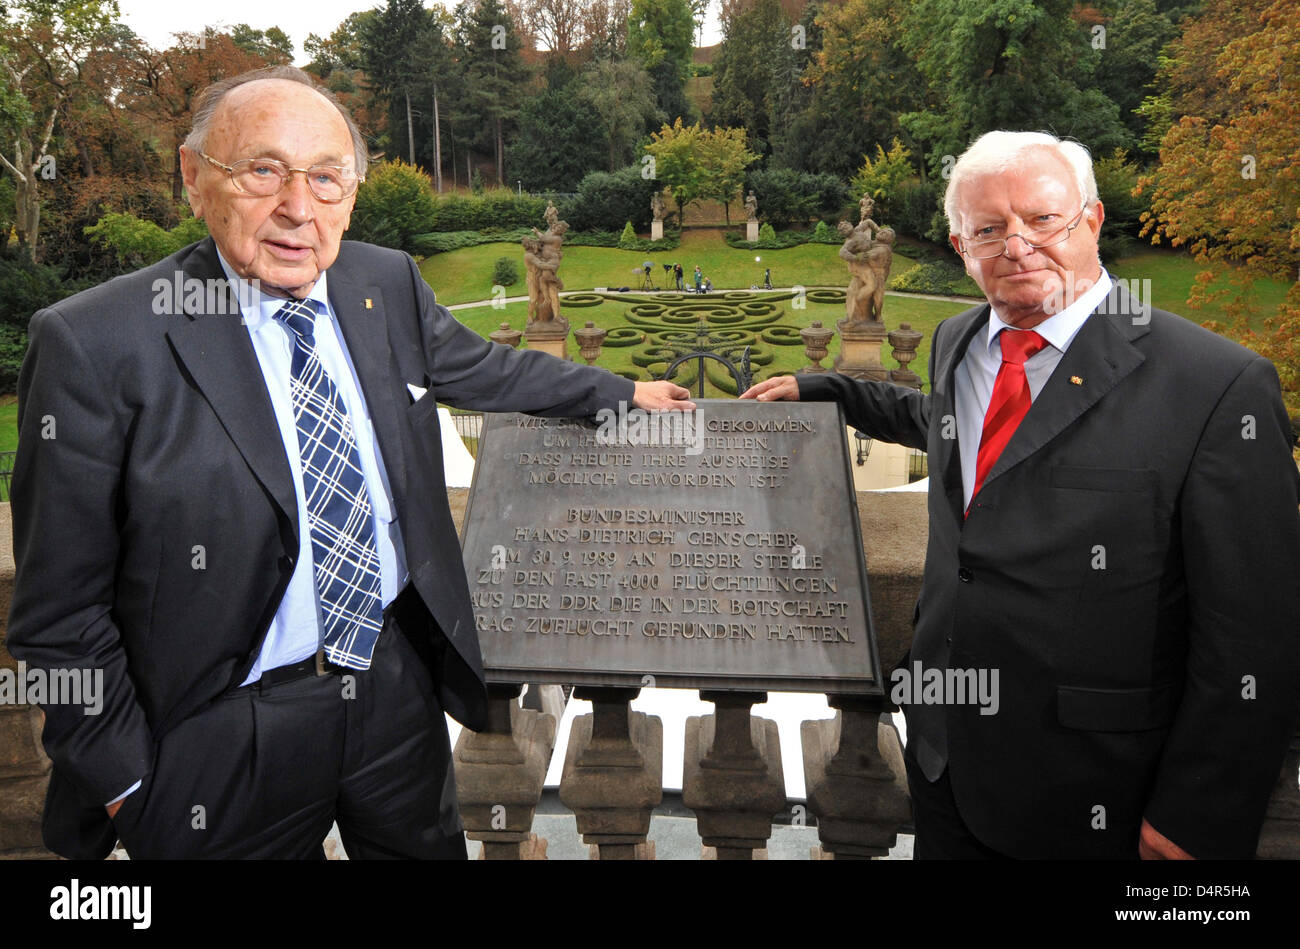 Former German Foreign Minister Hans-Dietrich Genscher and former German Chancellery Minister Rudolf Seiters stand - Stock Image